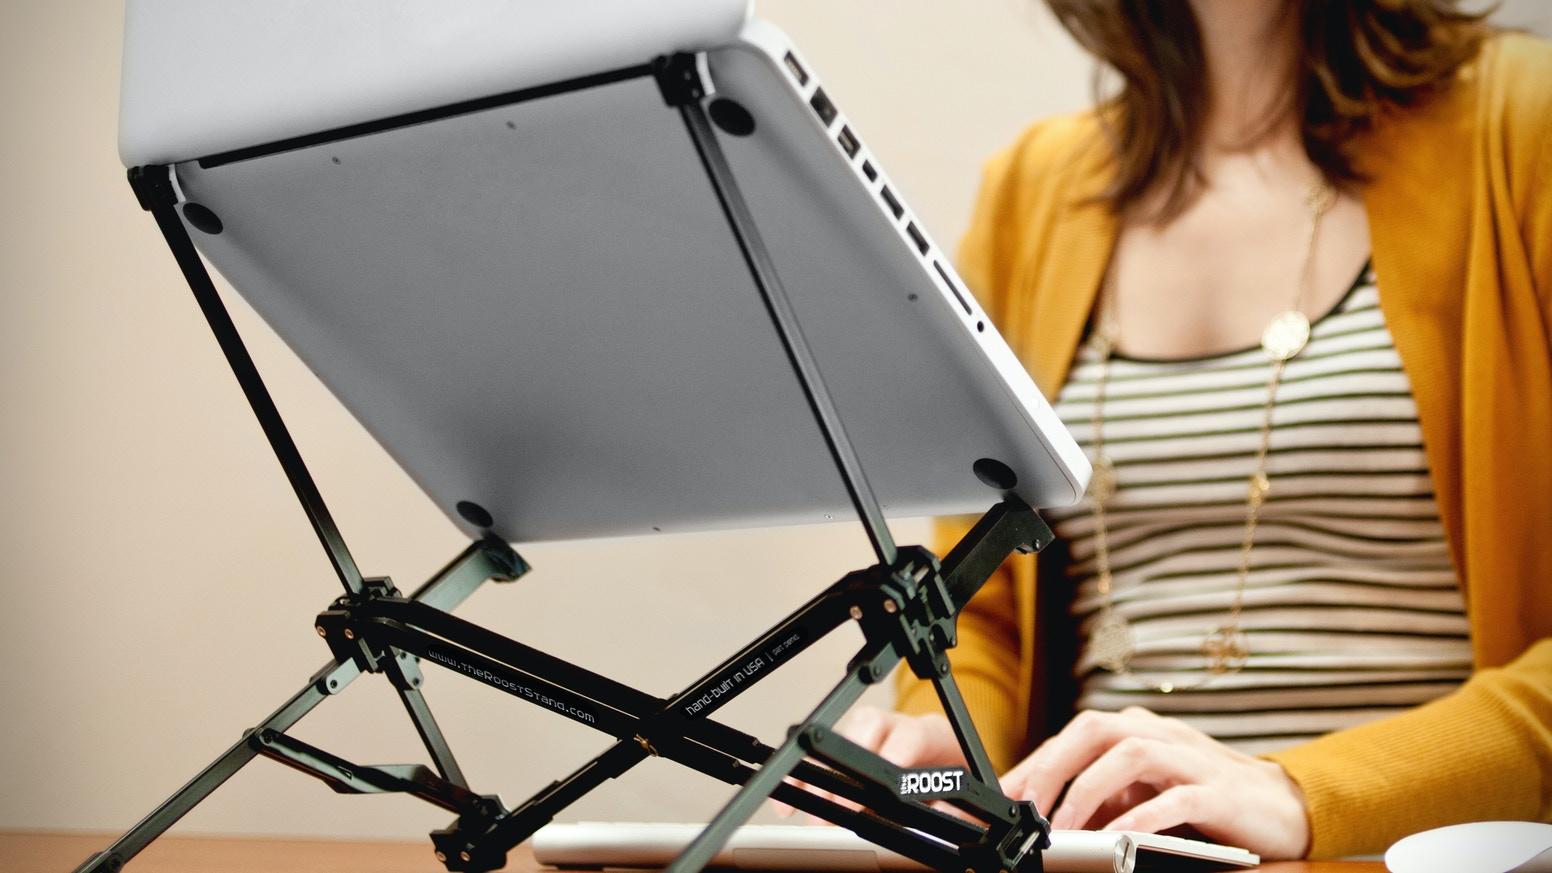 An ultra-portable device that transforms your laptop into a comfortable desktop workstation.